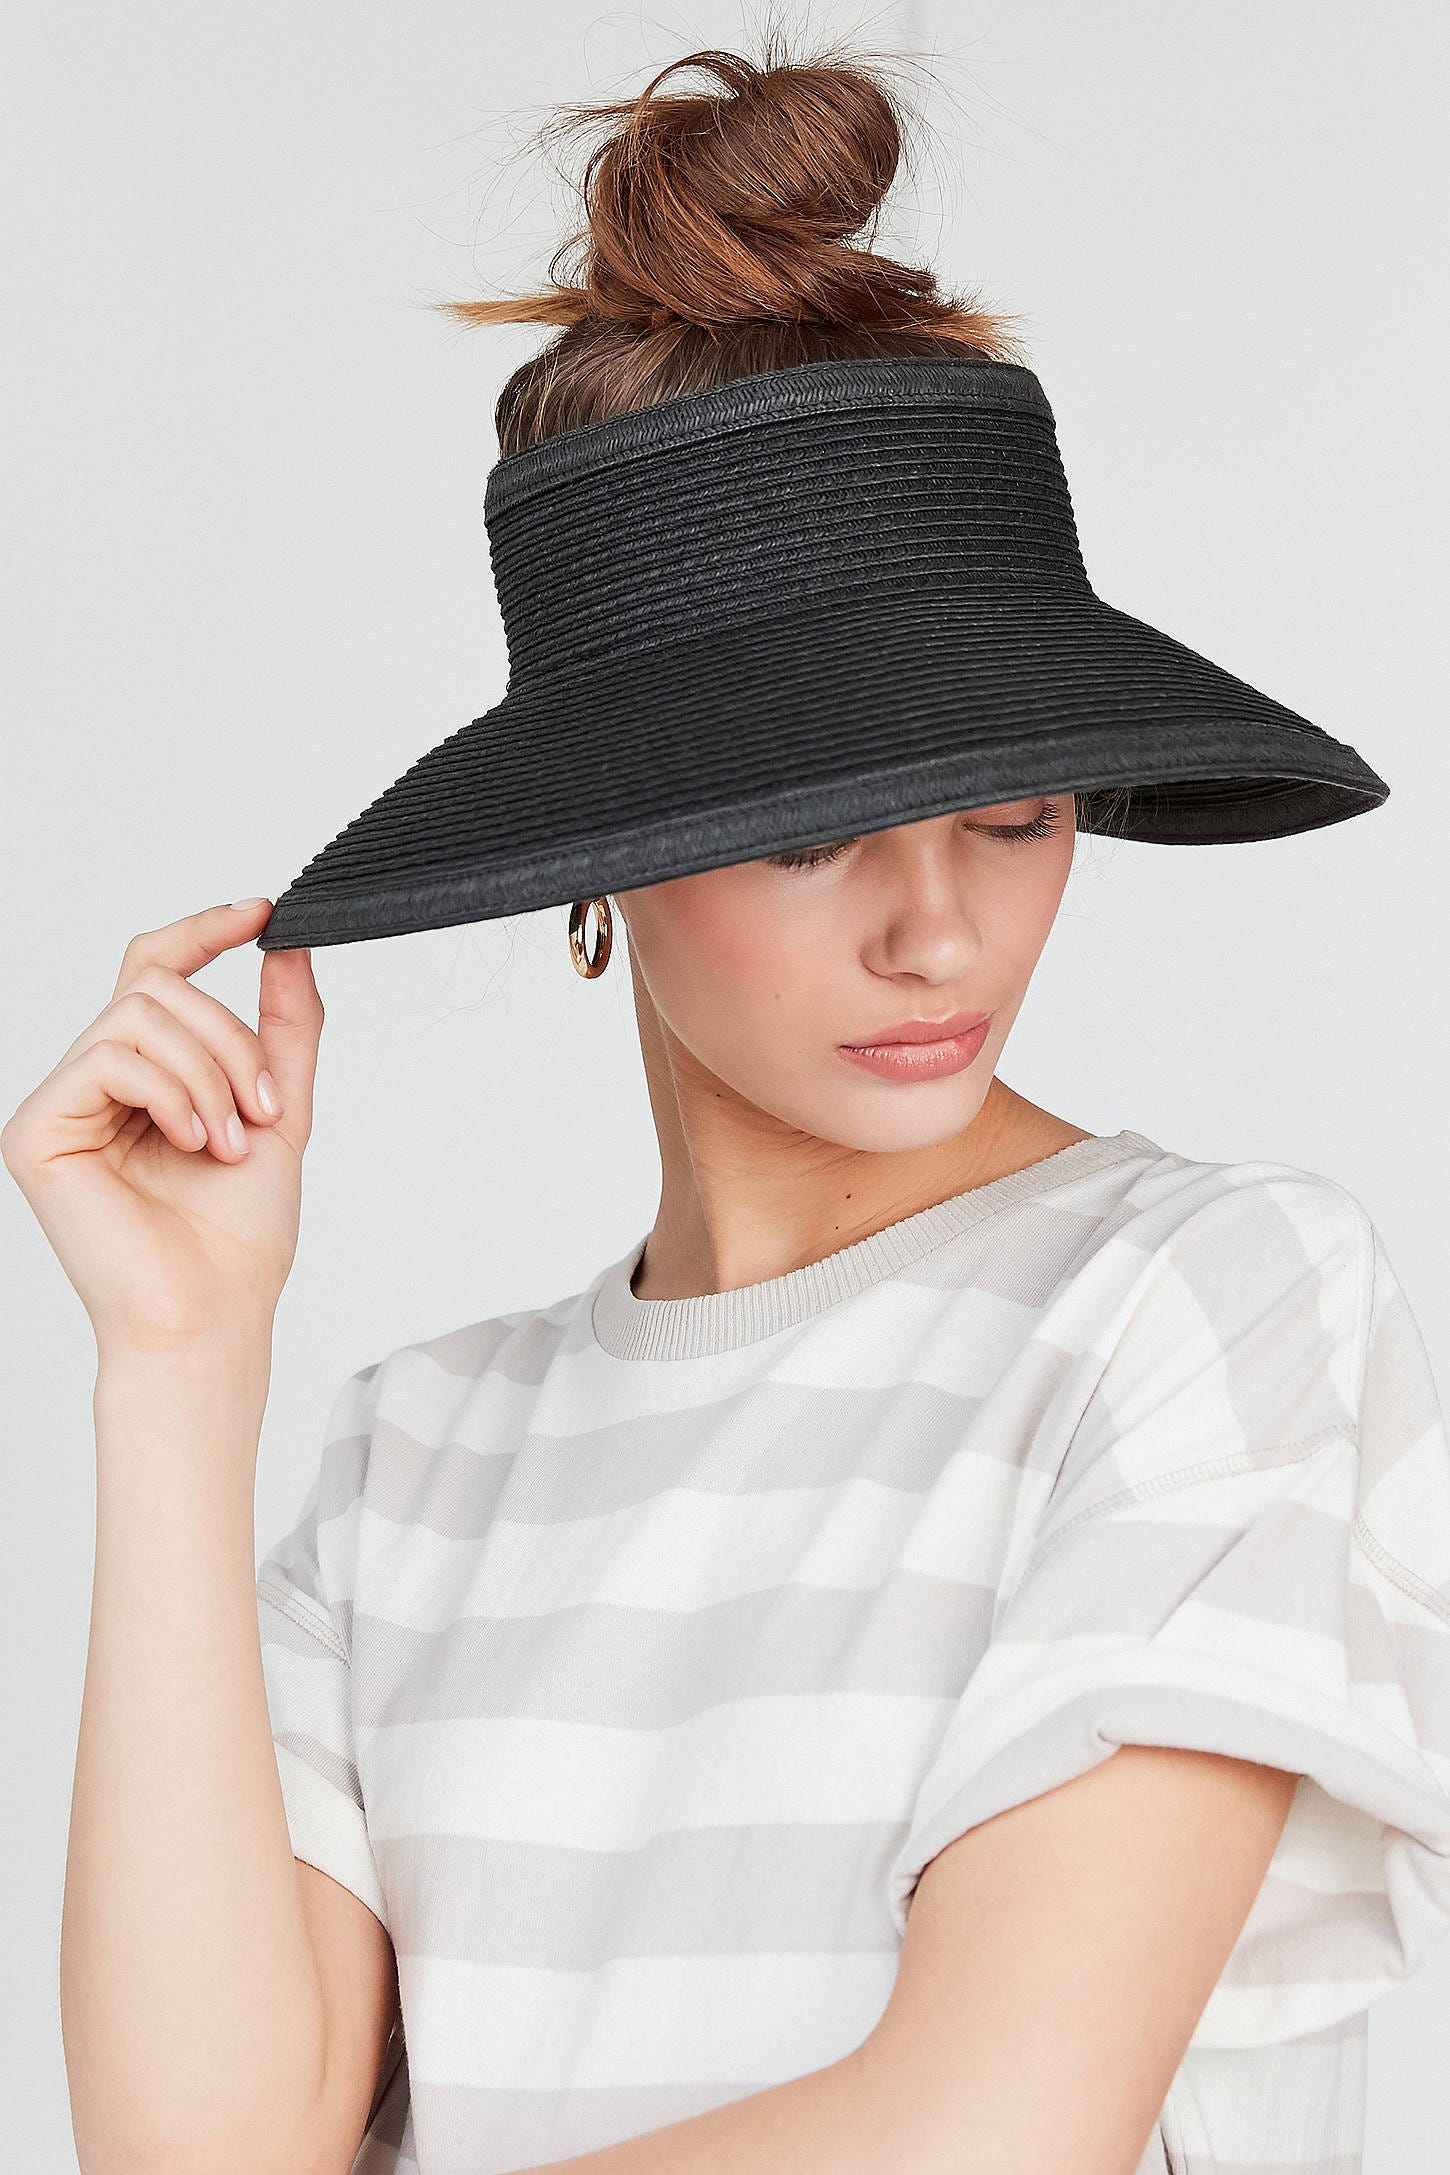 85b541e9f35 Straw Visors Are The New Summer Essential To Pack